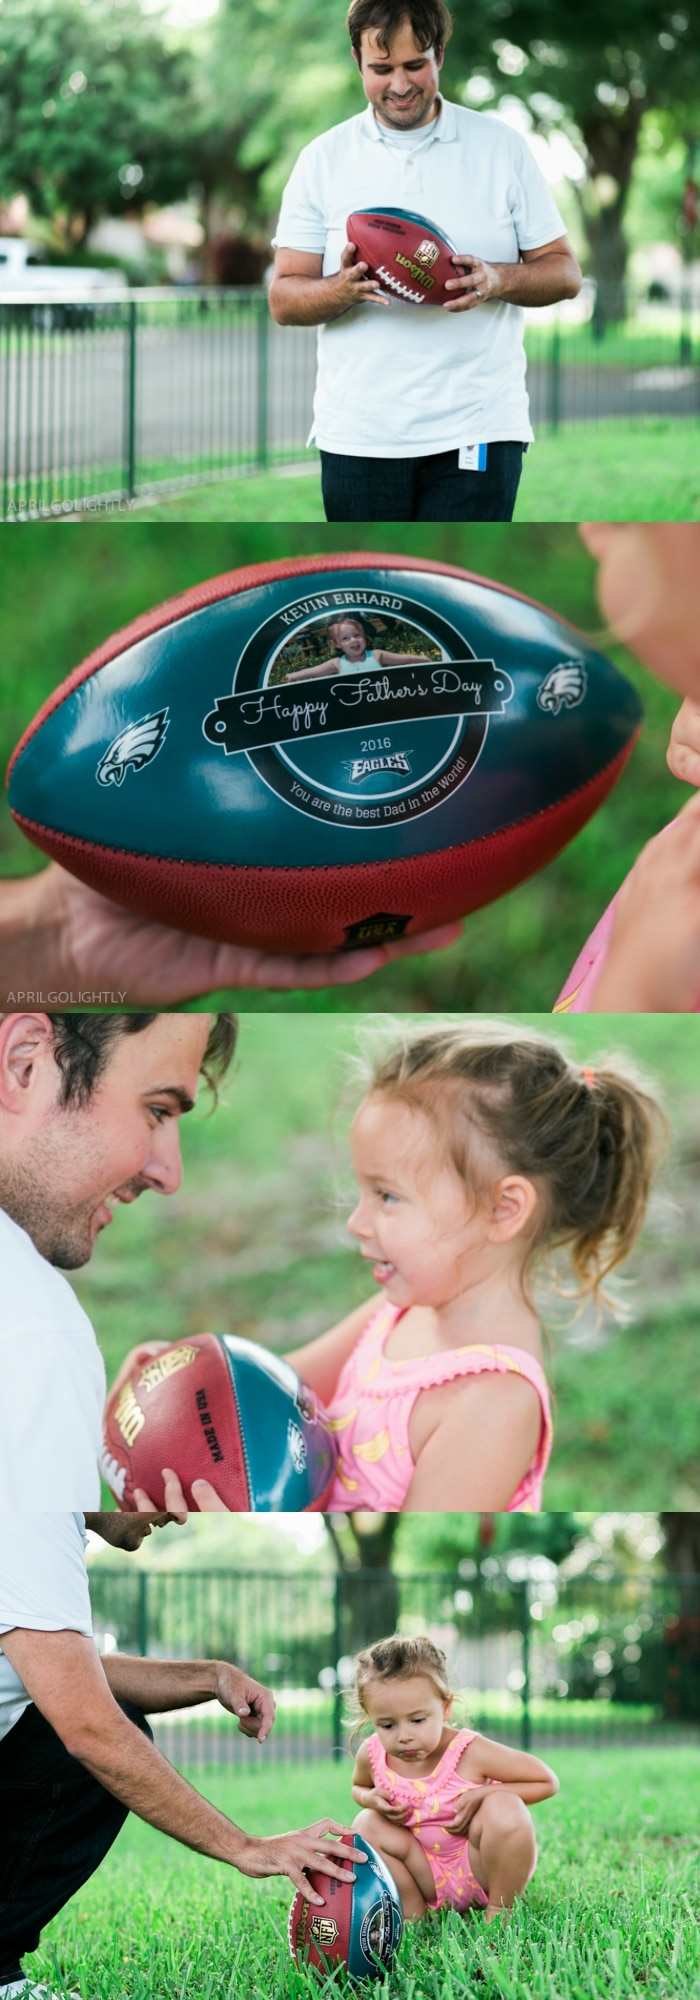 Perfect Father's Day Gift ideas from daughter and from kids for the football sports lover and those that love custom creations made special for dads